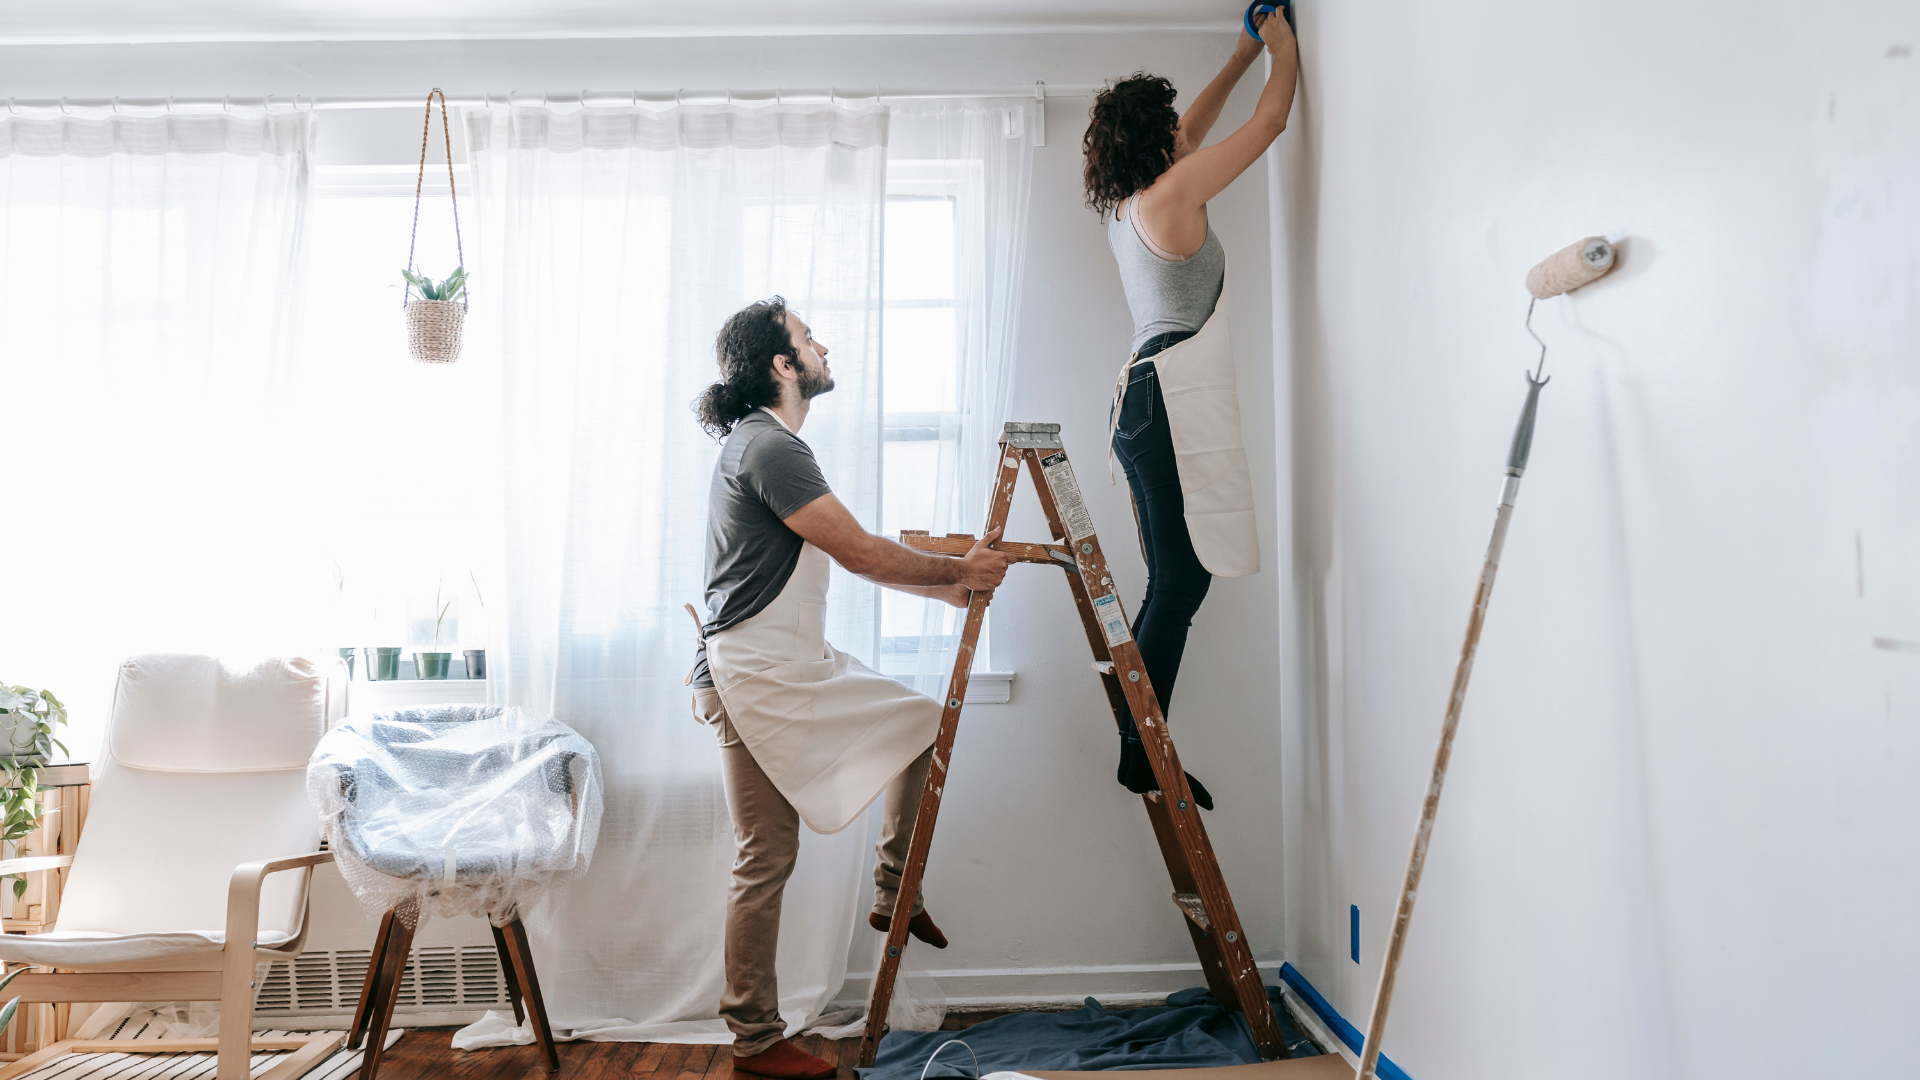 How Much Will That Cost Me? Budgeting For Renos Pre-Listing 101